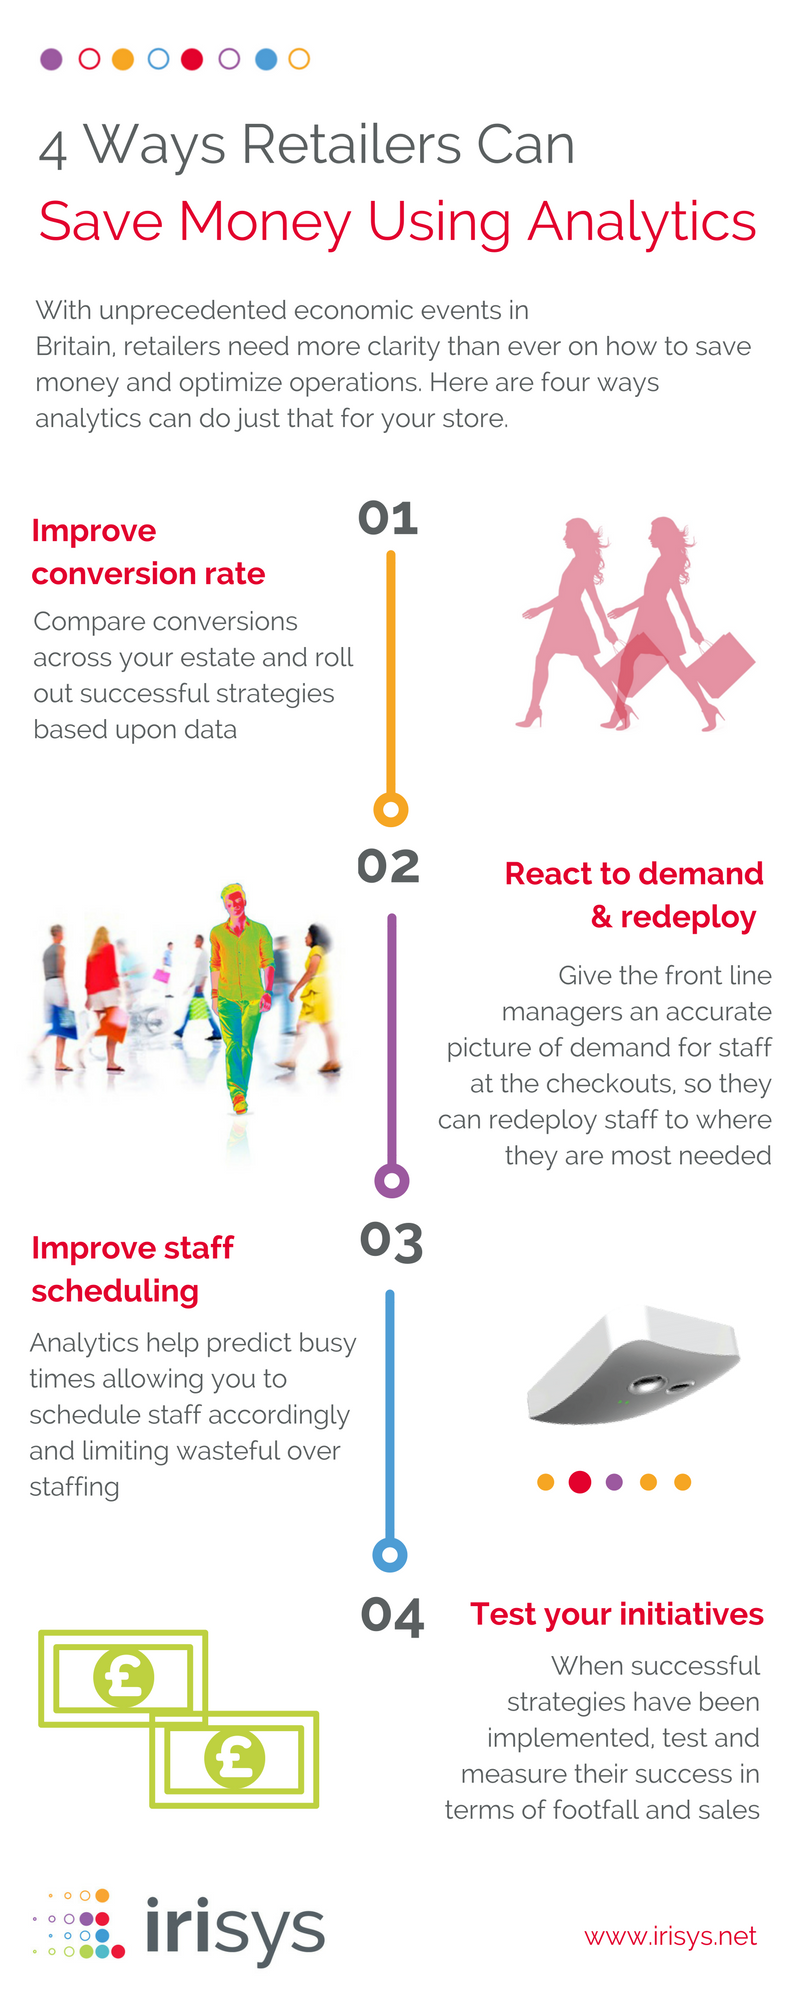 4_Ways_Retailers_Can_Save_Money_Using_Analytics_FINAL_8.3.2016.png